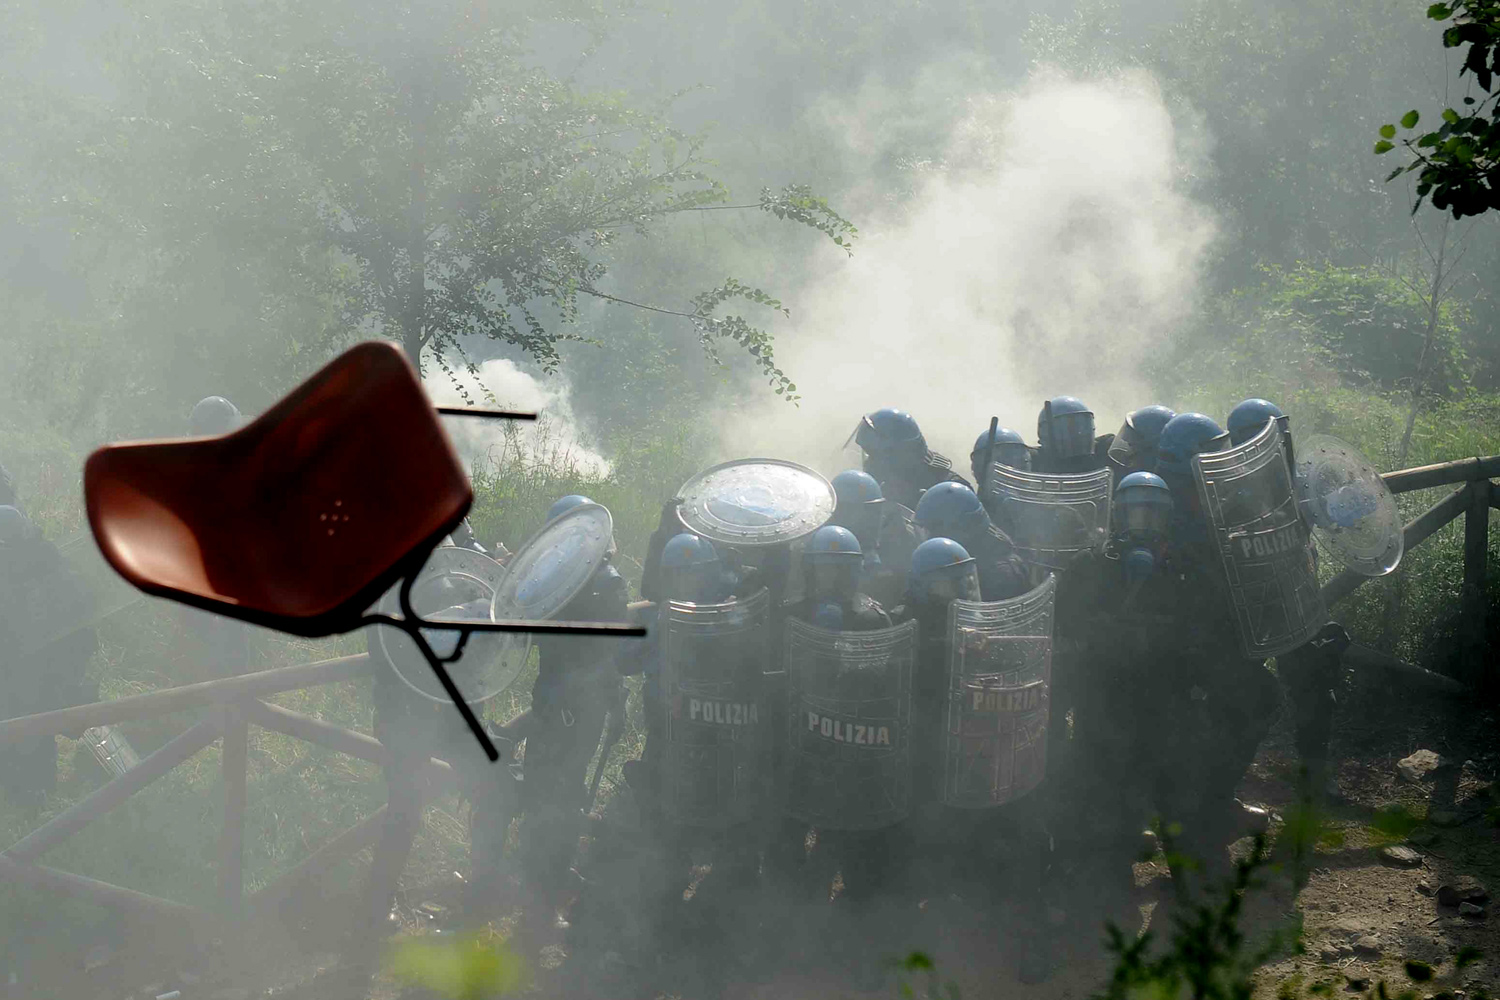 June 27, 2011. Italian police officers in riot gear clash with demonstrators in Chiomonte, Italy, over plans to build the Turin-Lyon high-speed train.